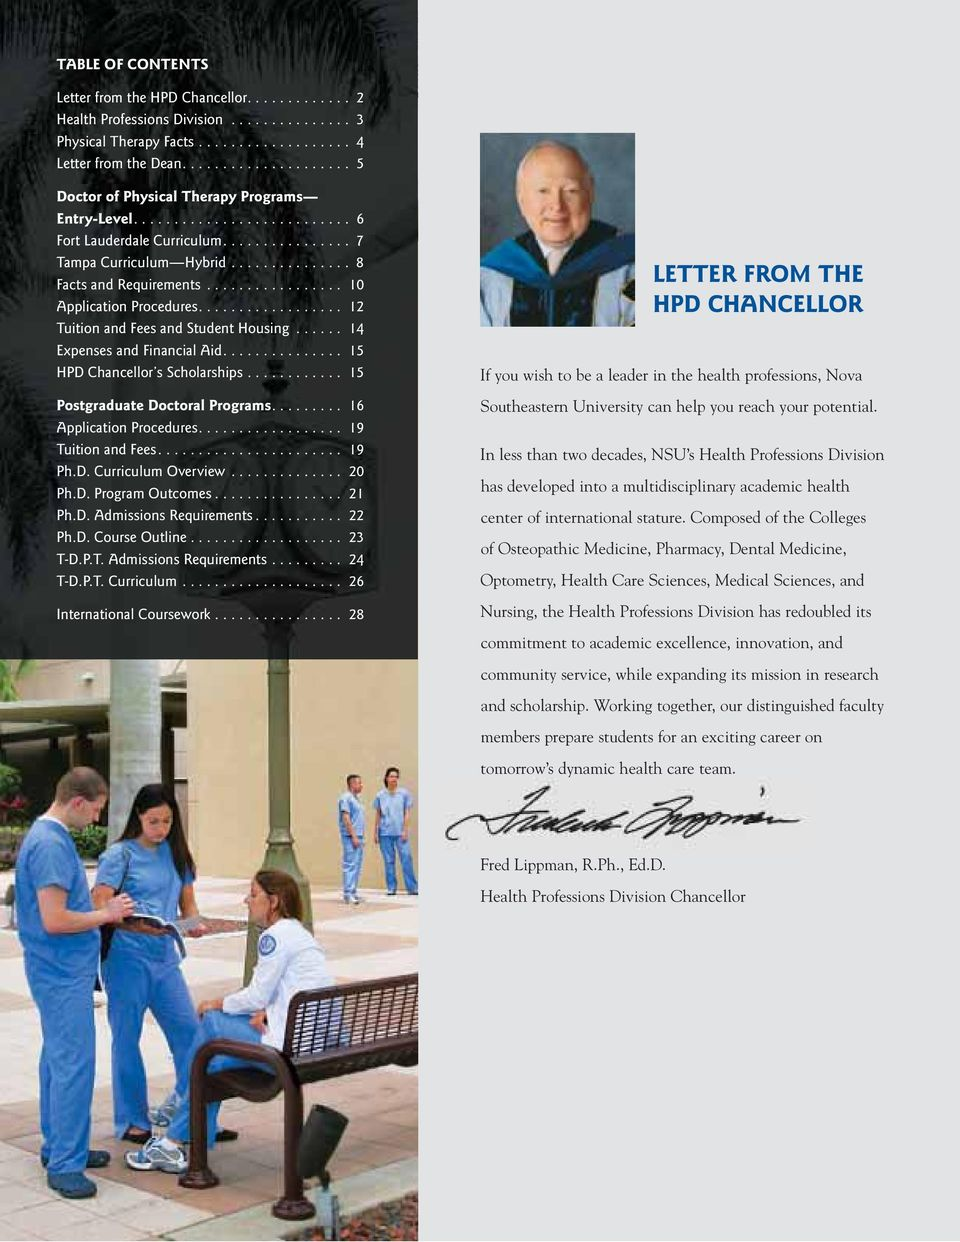 .. Ph.D. Admissions Requirements...... T-D.P.T. Admissions Requirements......... If you wish to be a leader in the health professions, Nova Southeastern University can help you reach your potential.